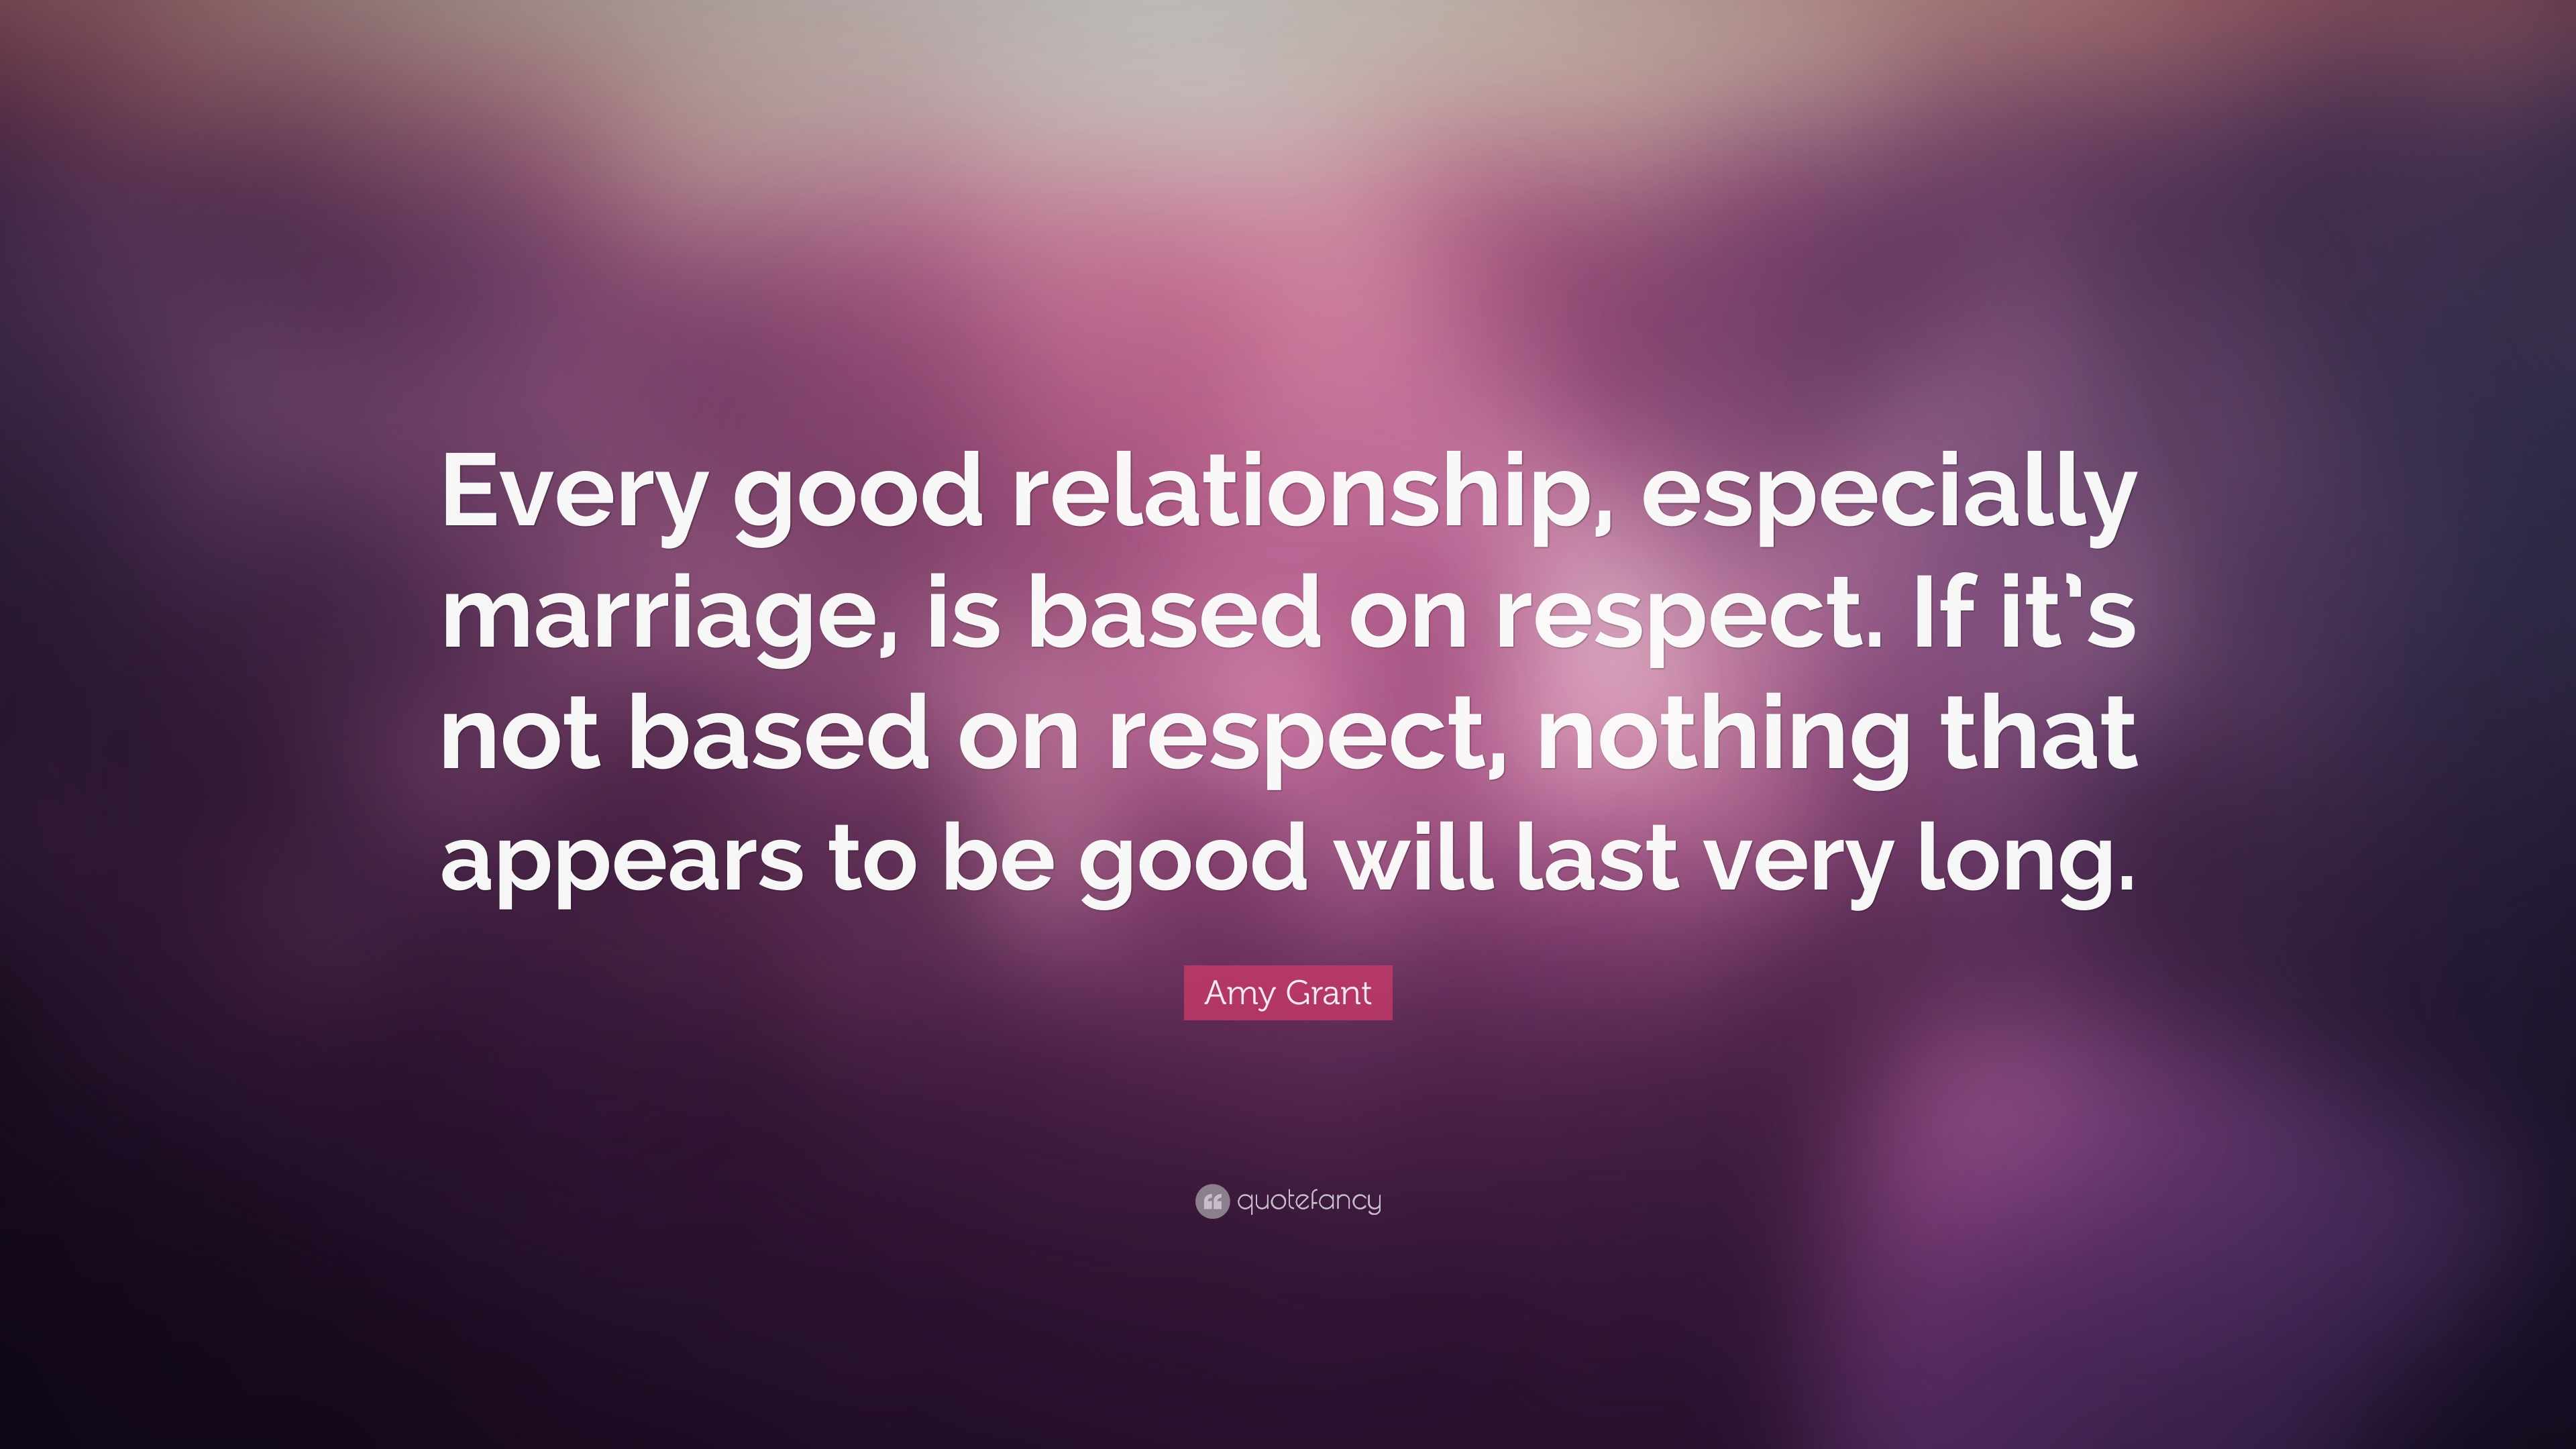 what is a good relationship based on